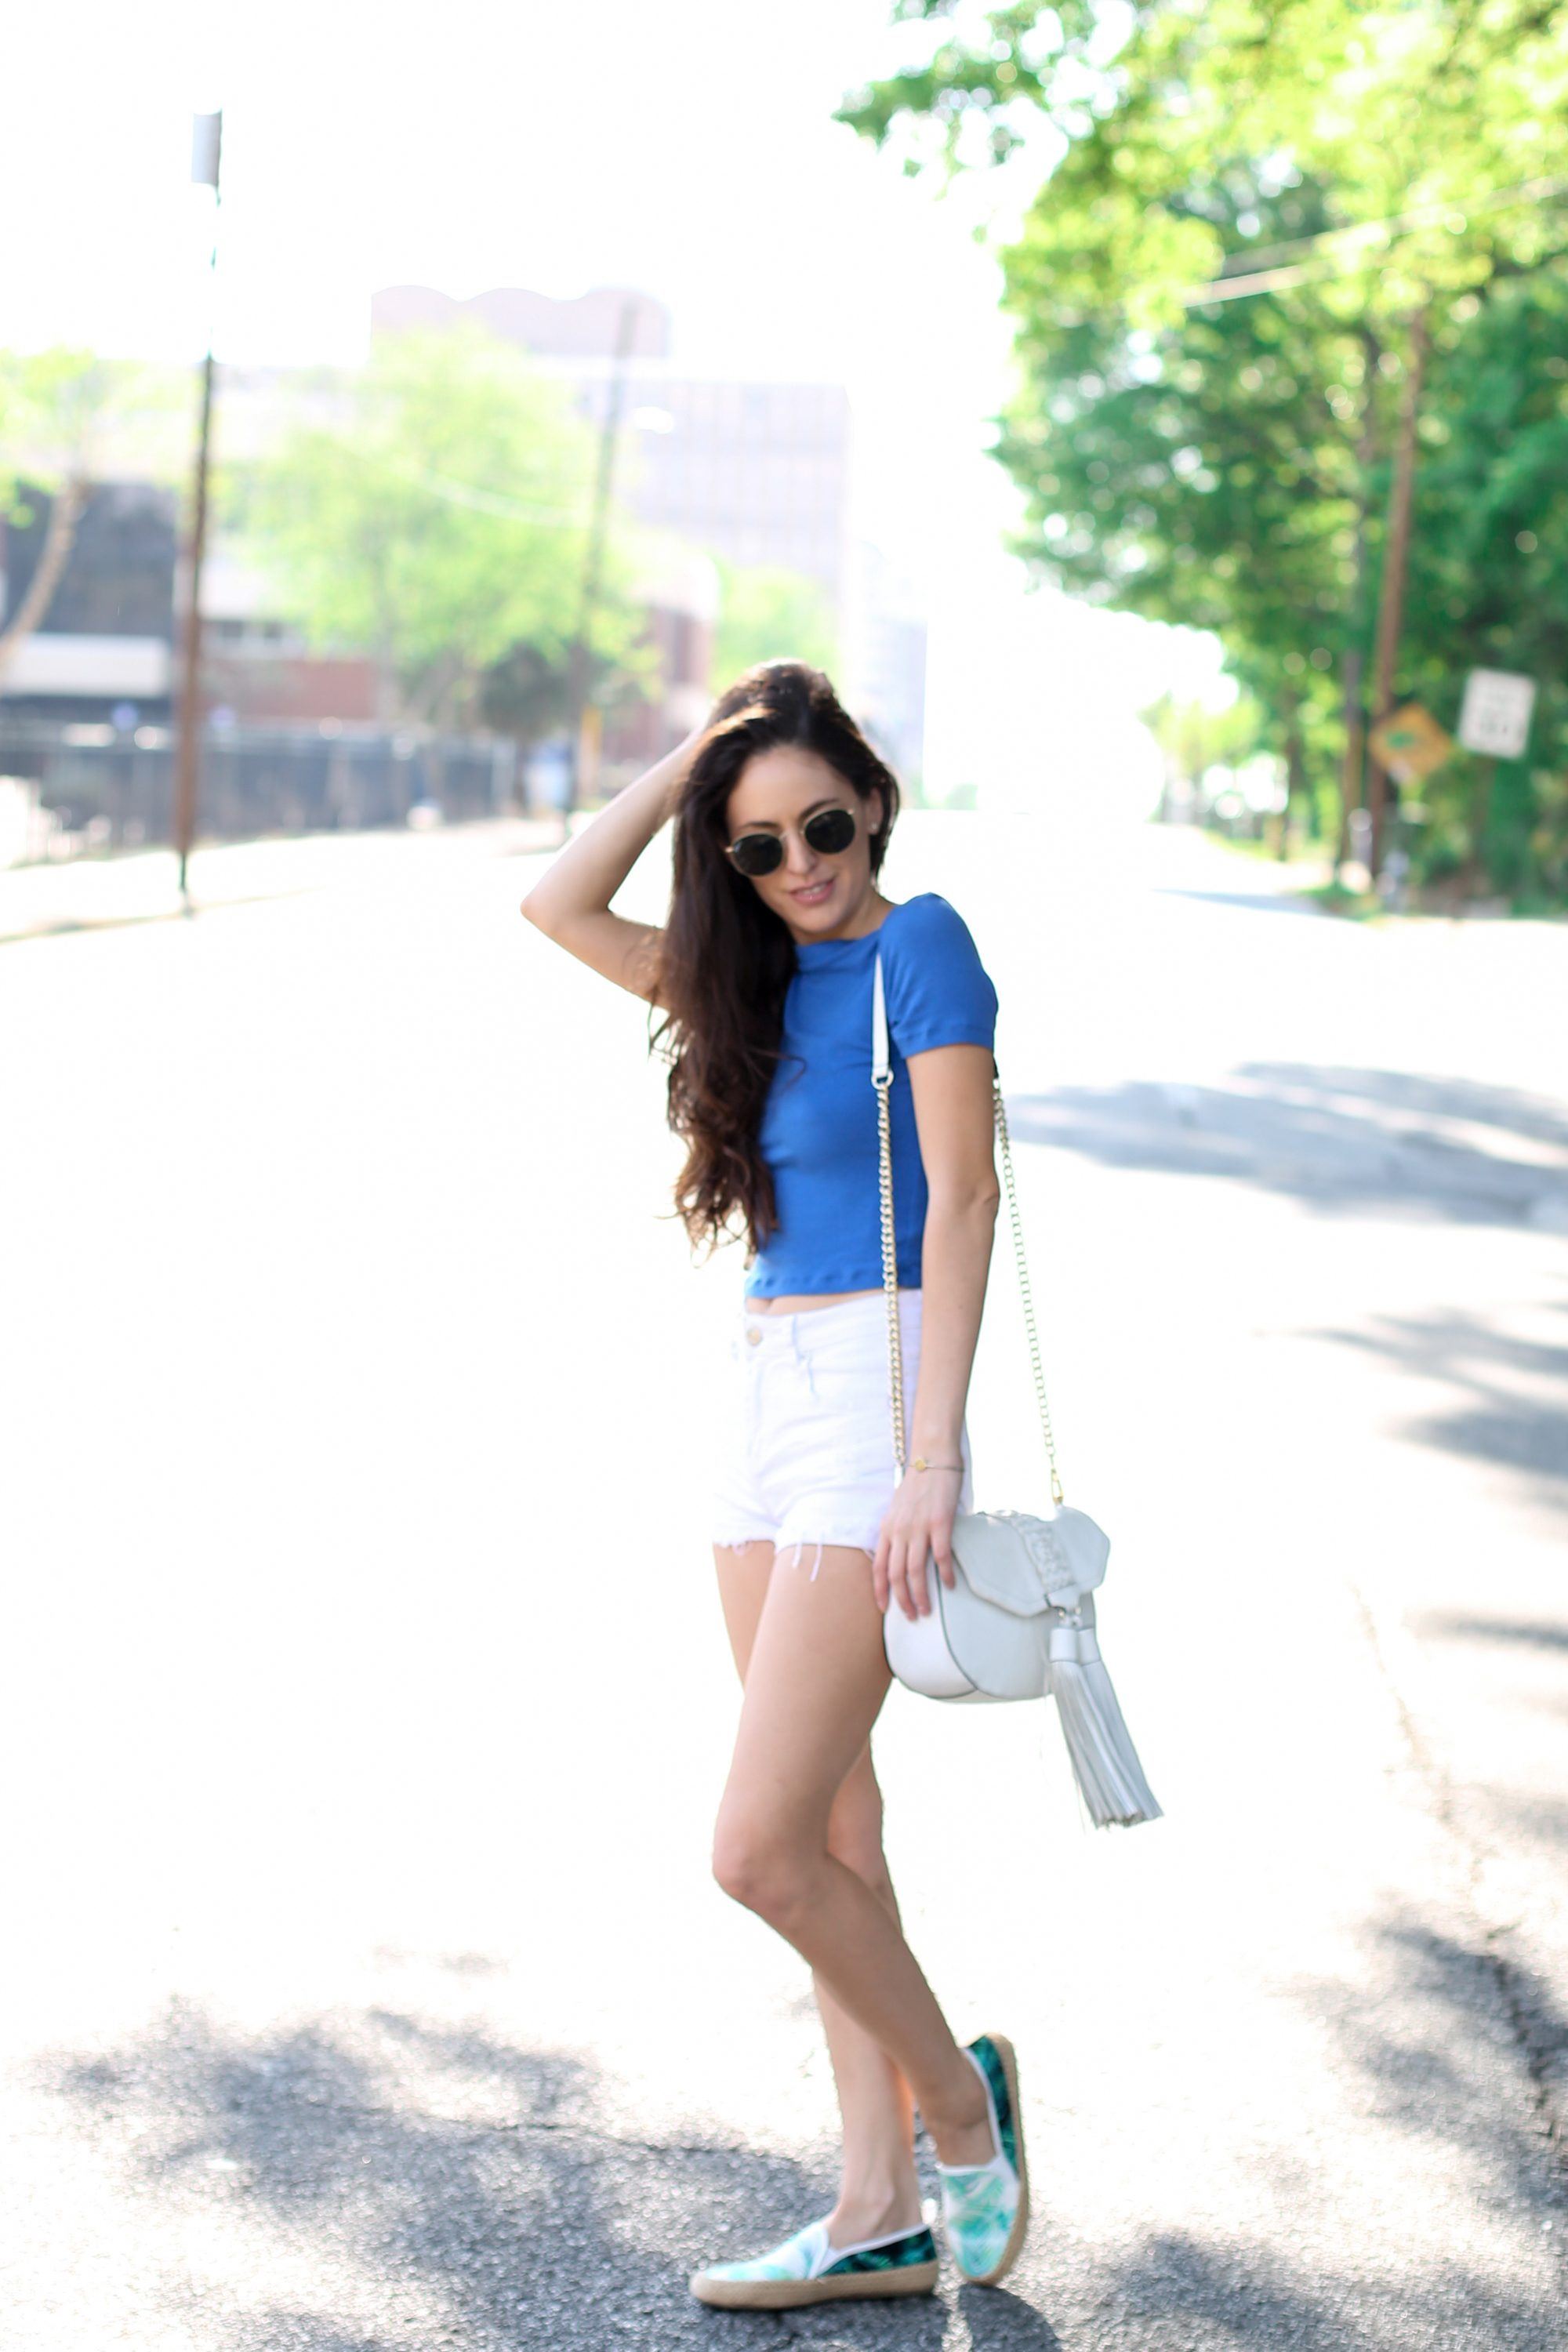 palm print shoes, royal blue crop top, summer style, summer outfit ideas, round raybans